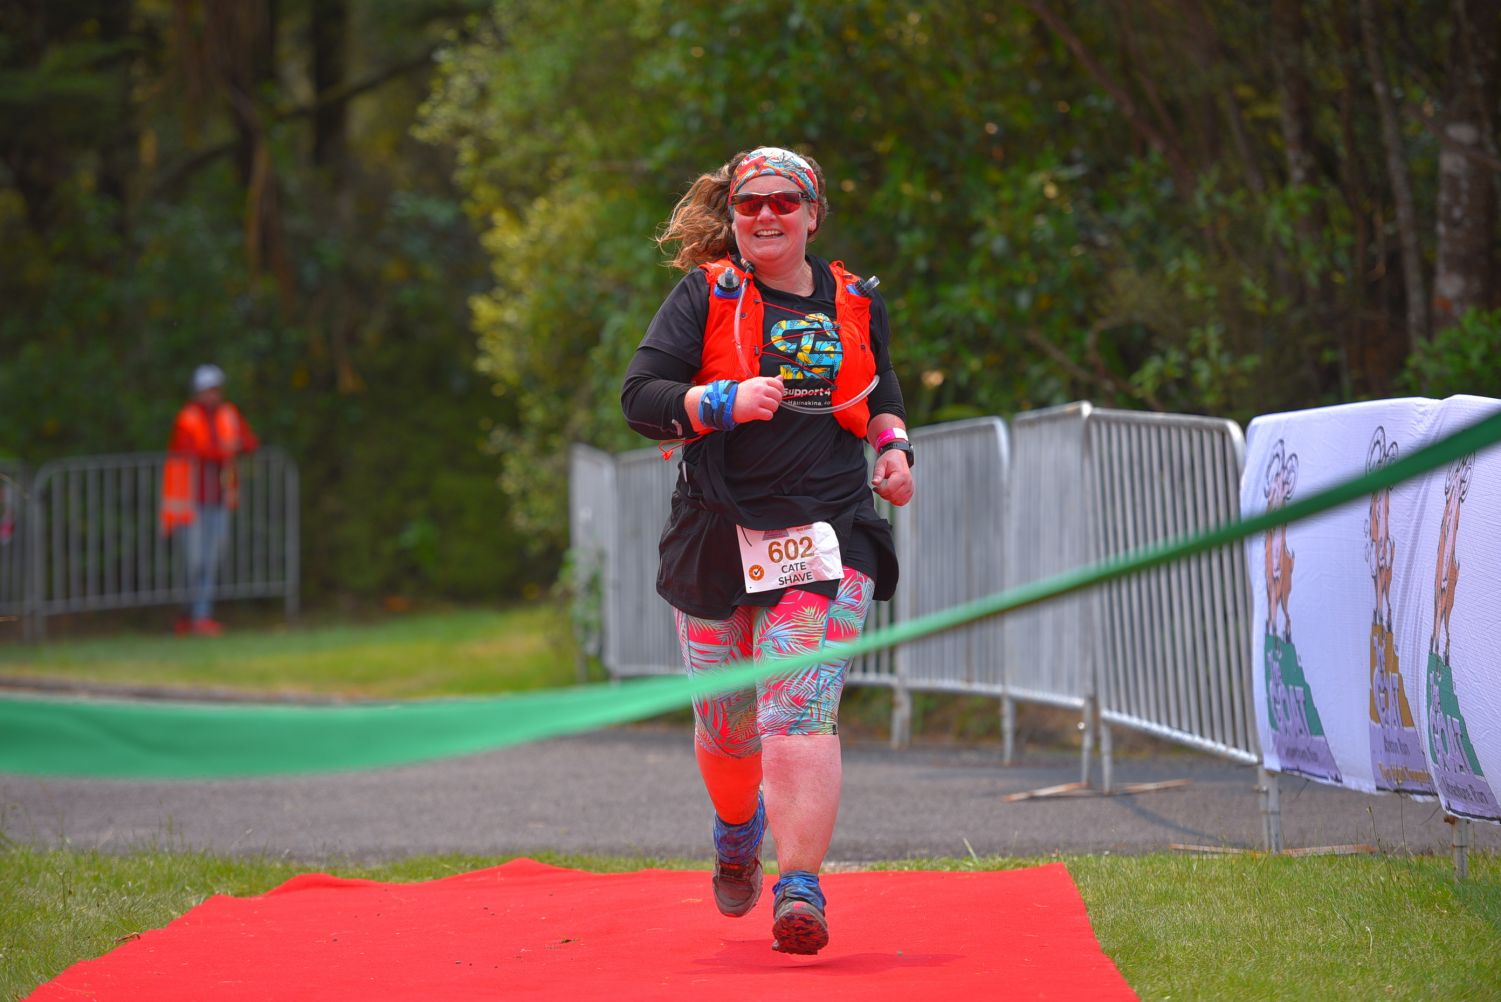 All smiles crossing the finish line at The Goat. Photo credit: Photos4Sale